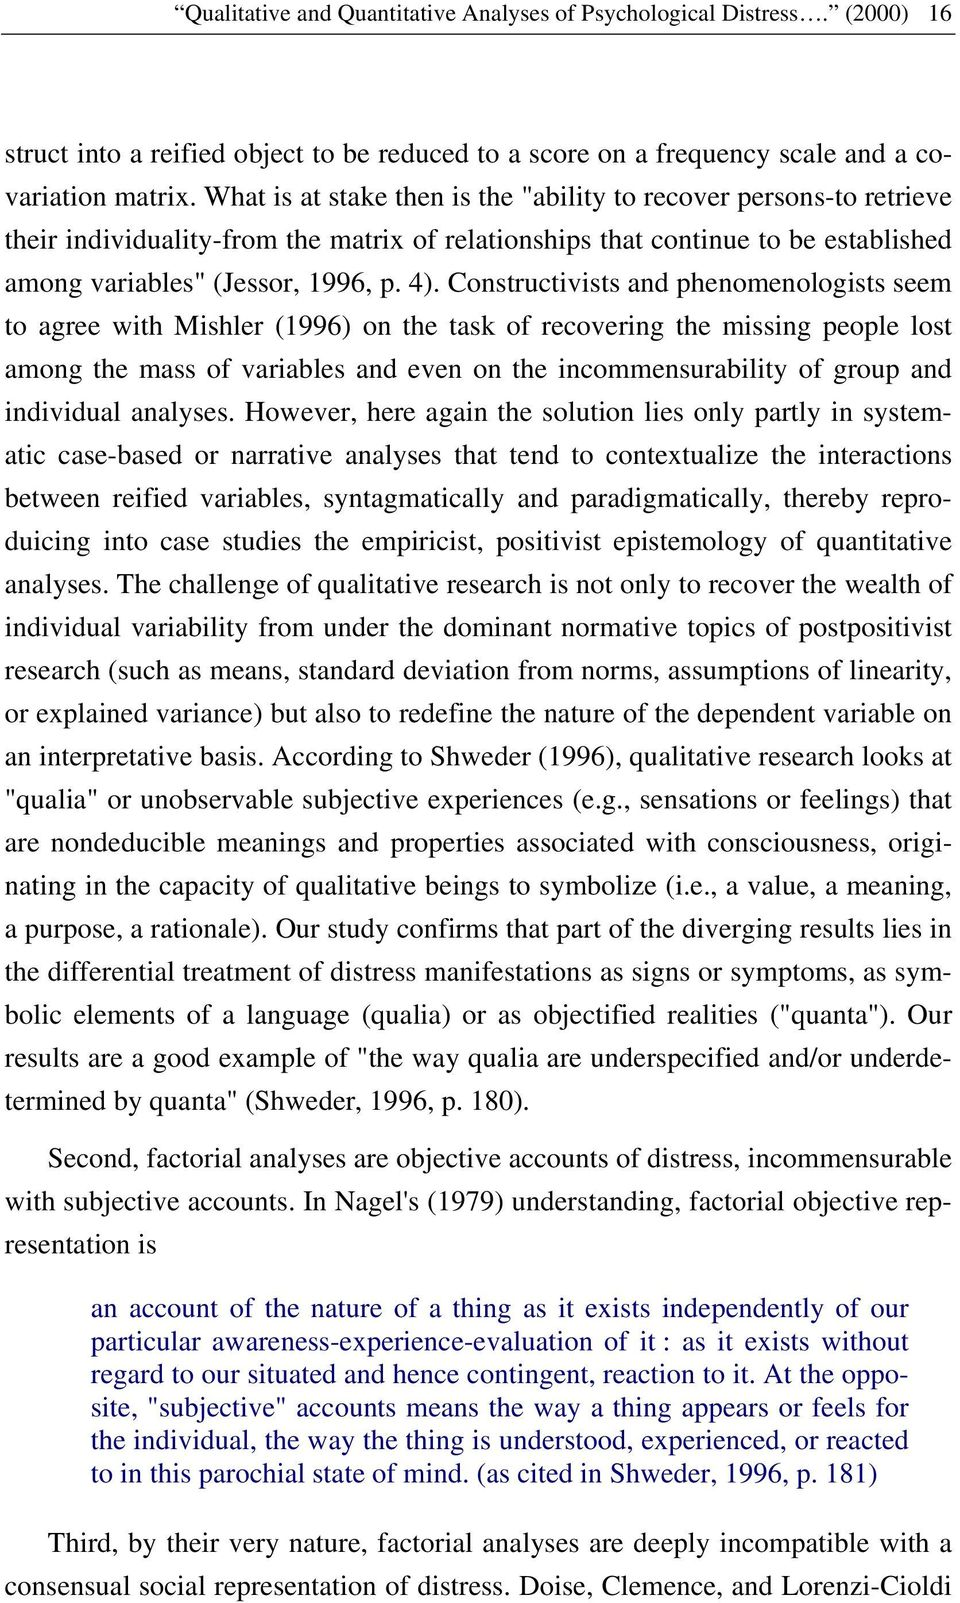 Constructivists and phenomenologists seem to agree with Mishler (1996) on the task of recovering the missing people lost among the mass of variables and even on the incommensurability of group and